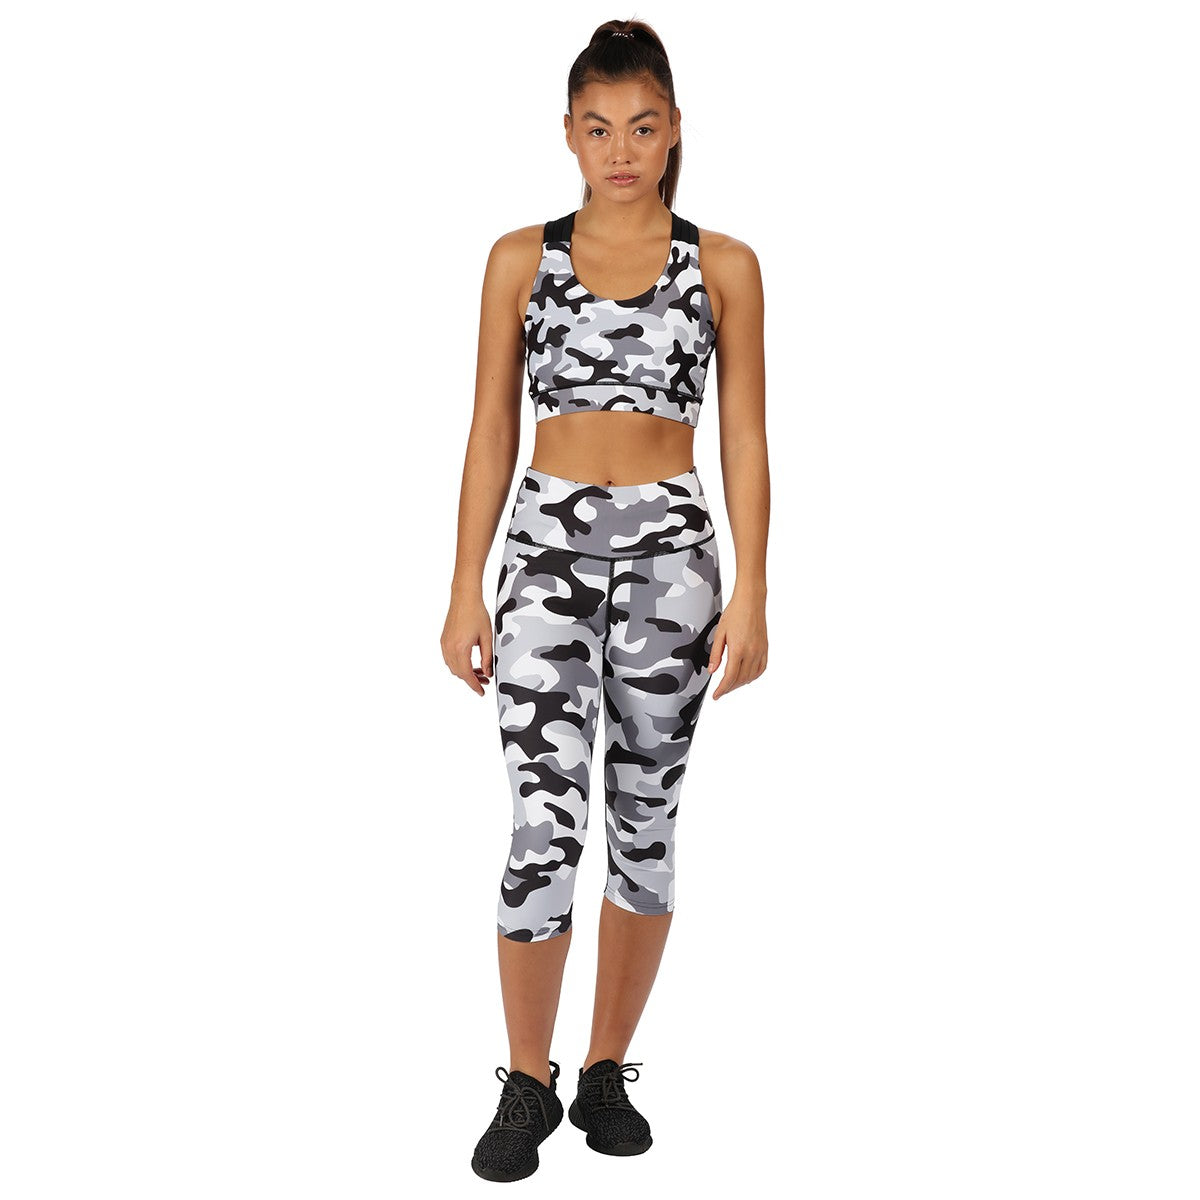 Tikiboo Monochrome Camo Cross Back Crop Top - Front Model View